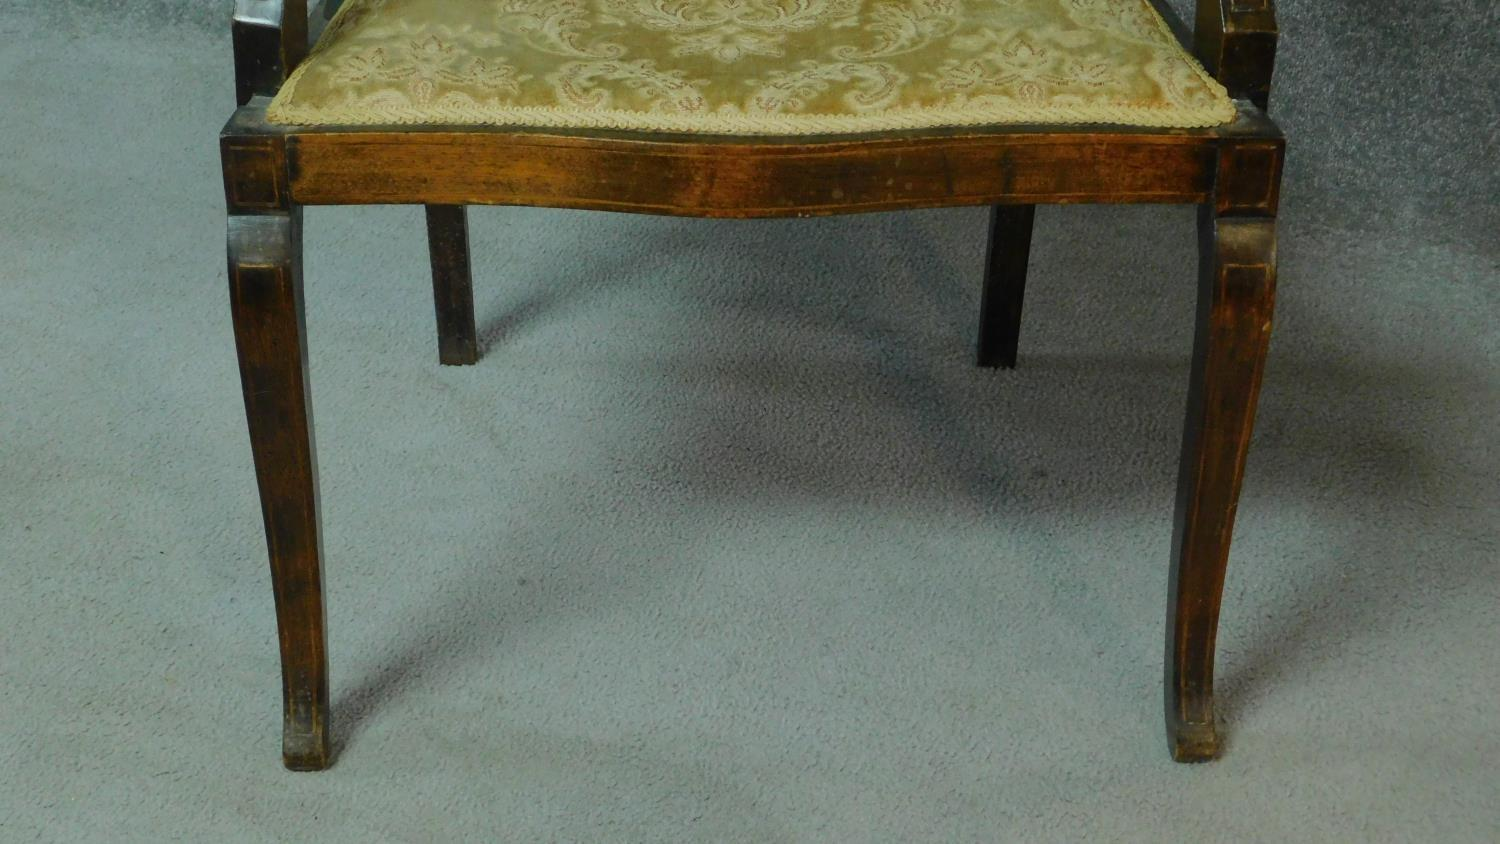 A late Victorian mahogany and satinwood inlaid armchair with urn design to the back, floral - Image 5 of 7